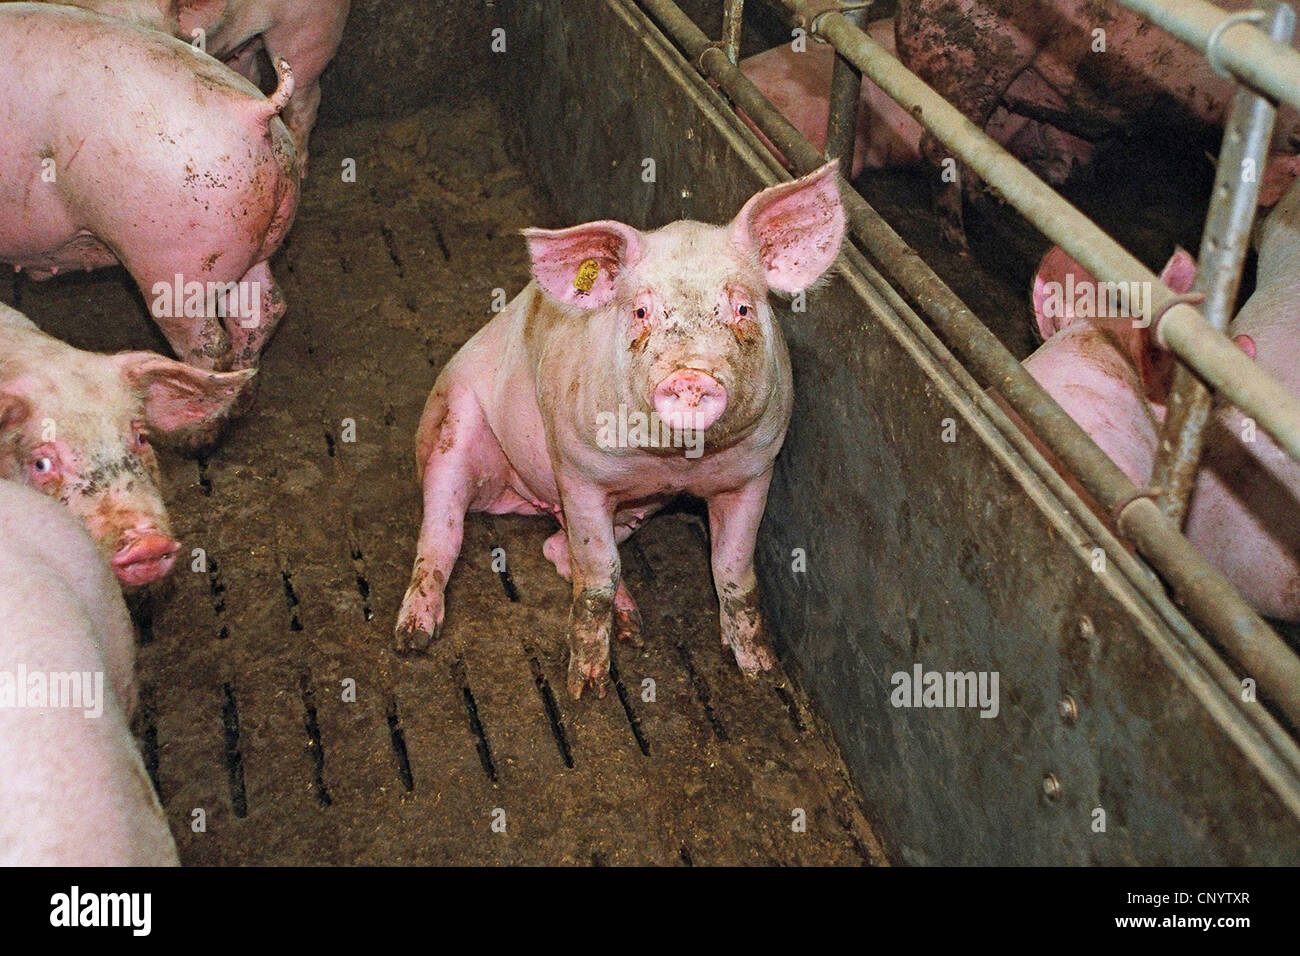 sitting on the slatted floor of a fattening stable , Germany - Stock Image